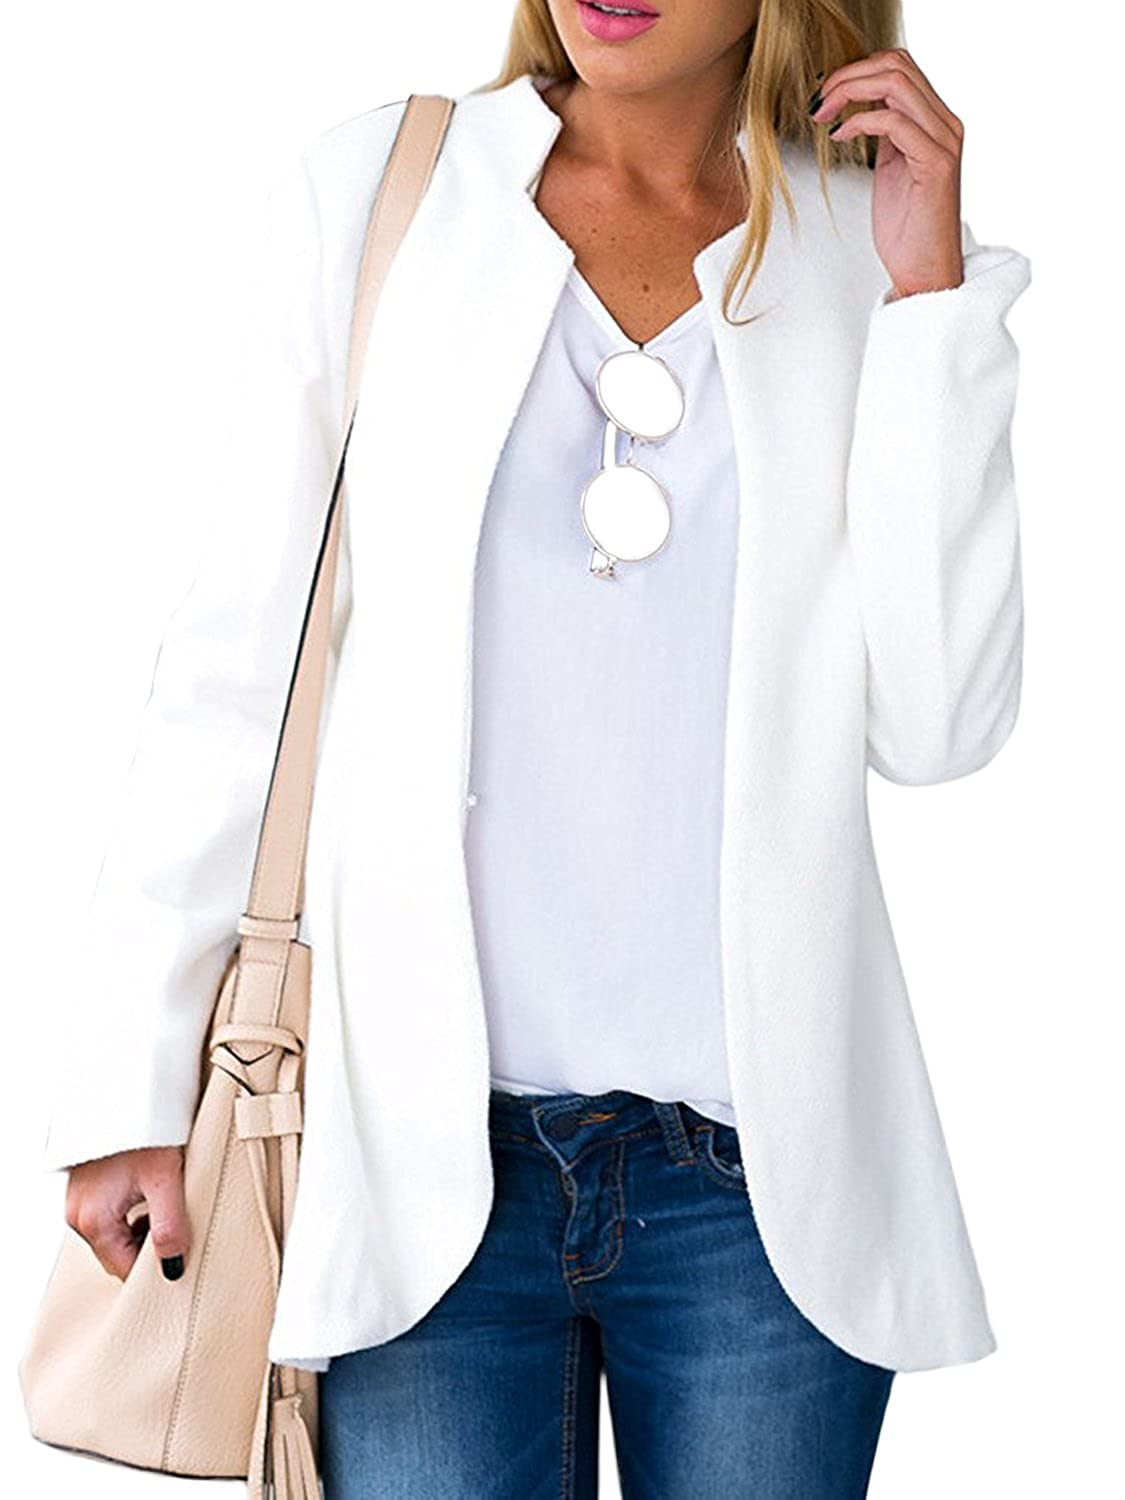 Choies Women's Fashion Casual Long Sleeve Slim Office Blazer With Stand Collar CA0298